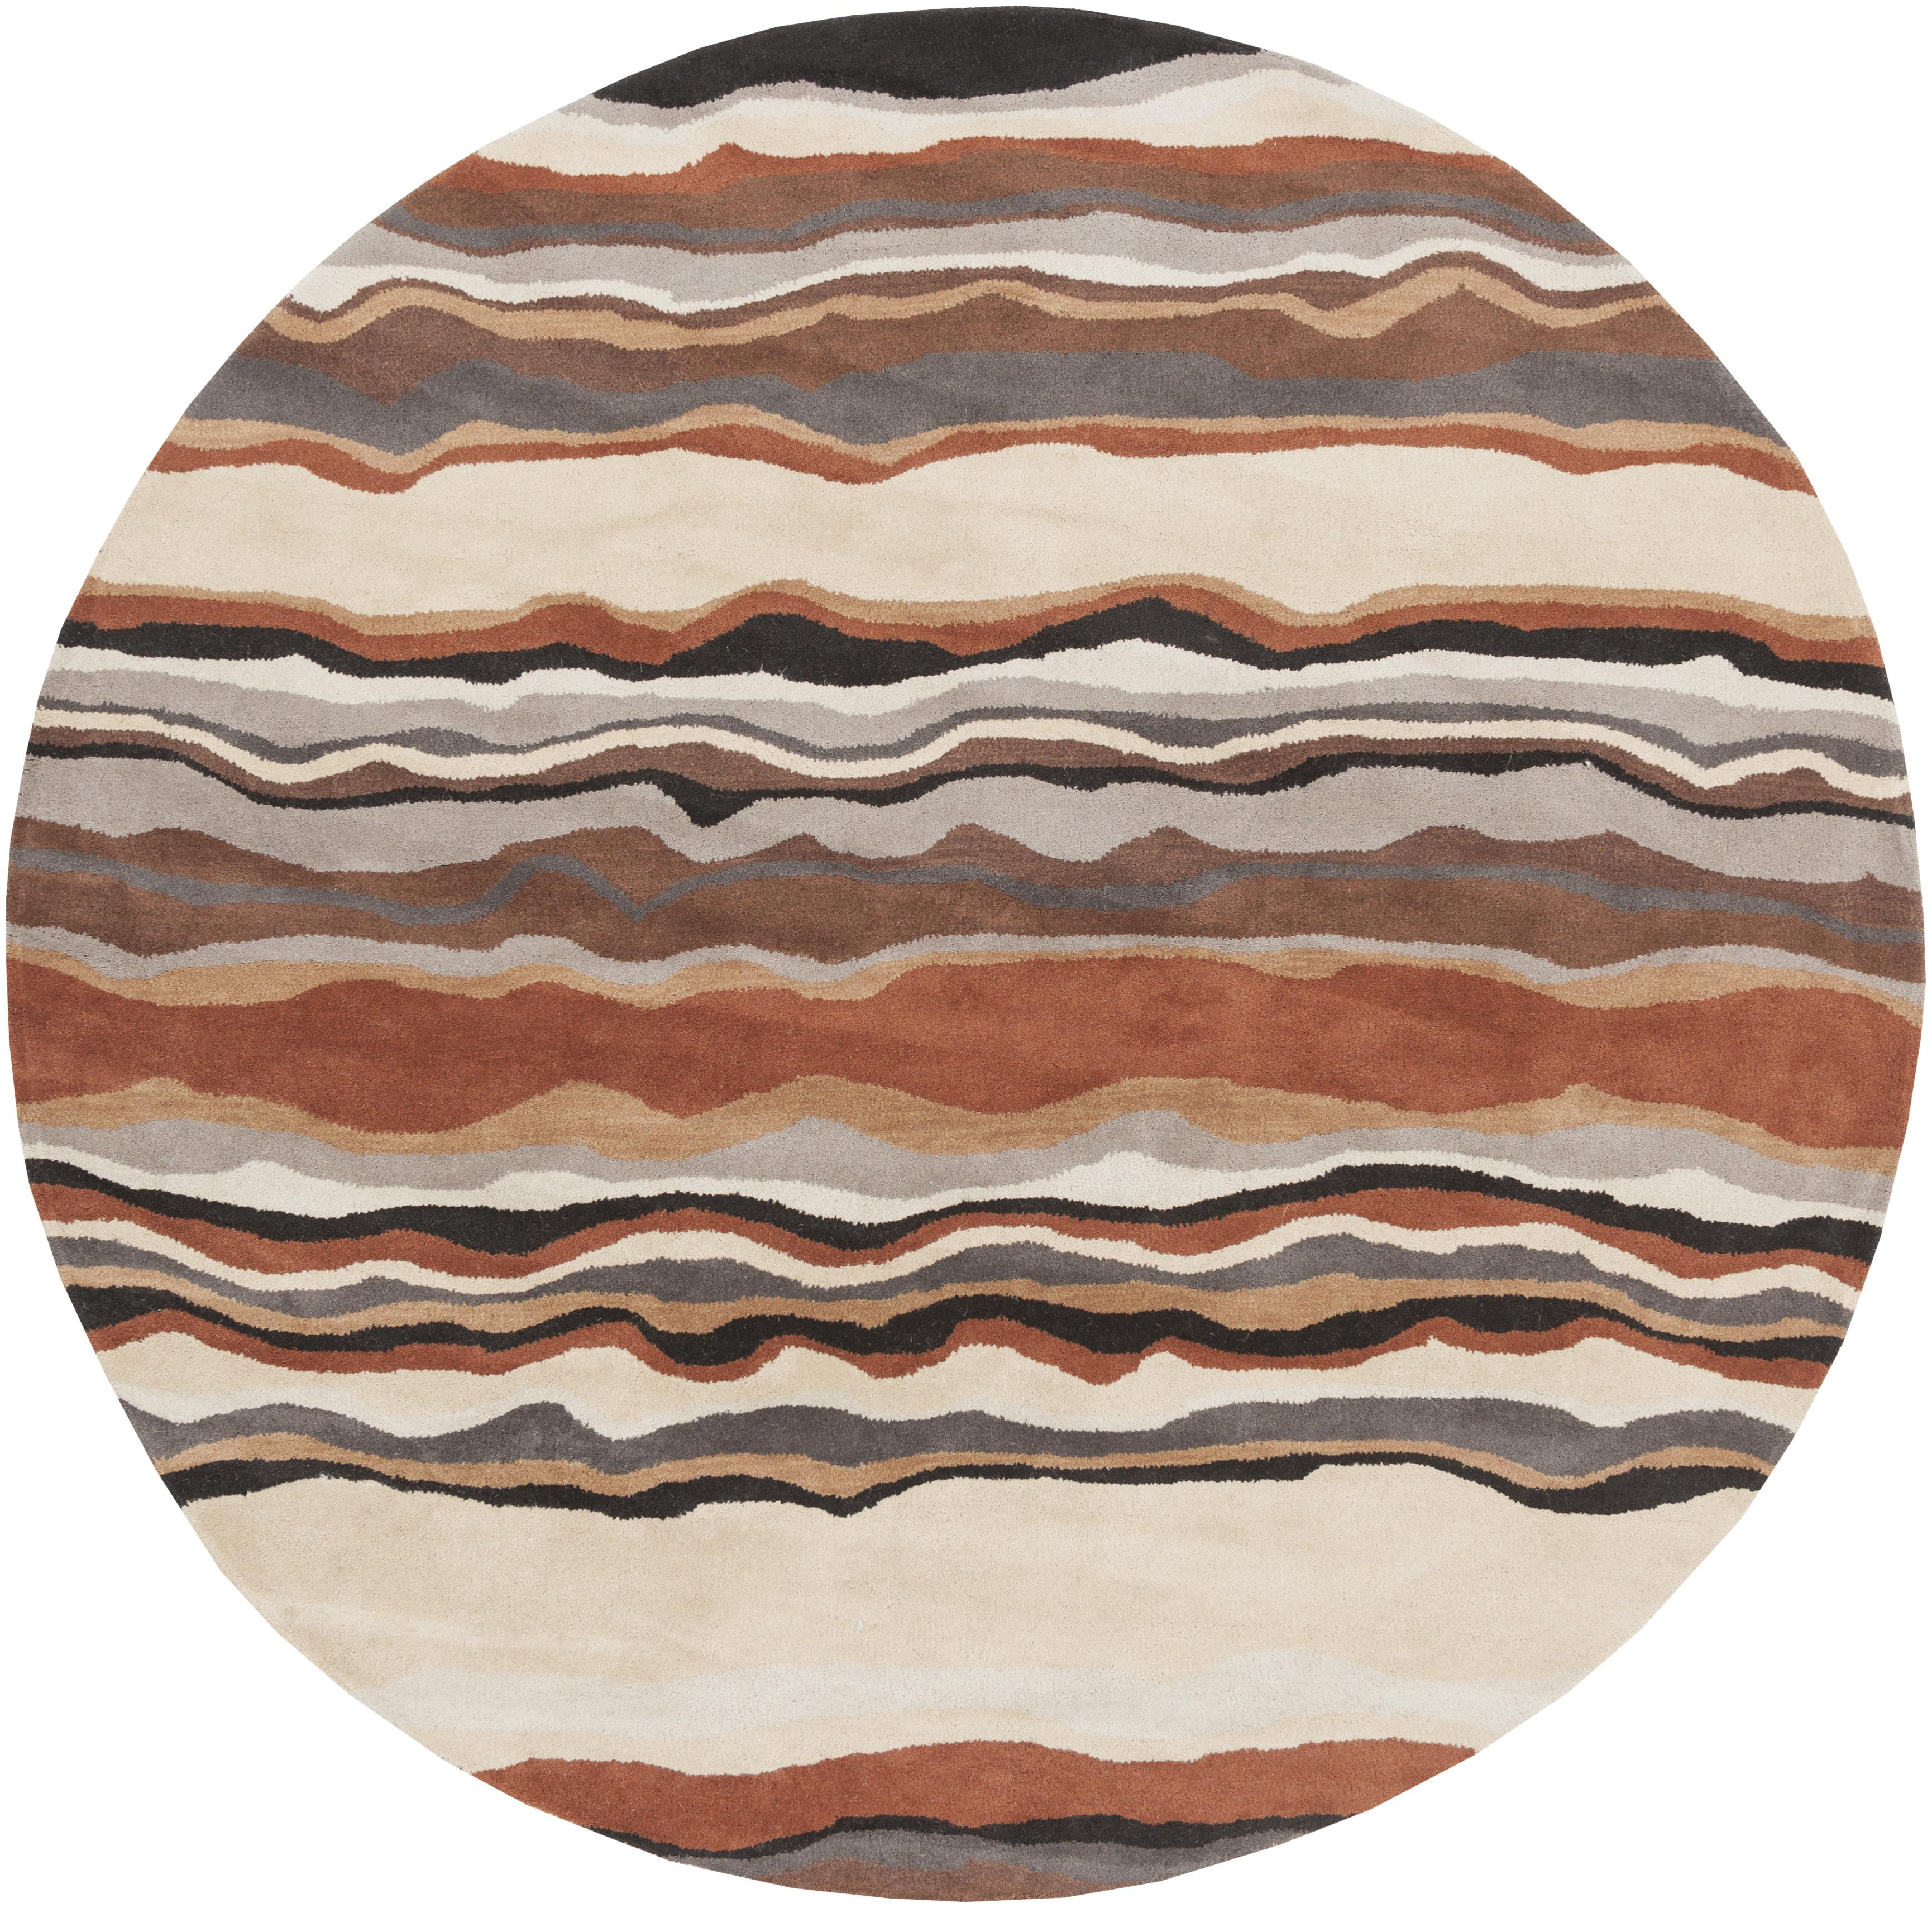 Surya Rugs Forum 6' Round - Item Number: FM7192-6RD